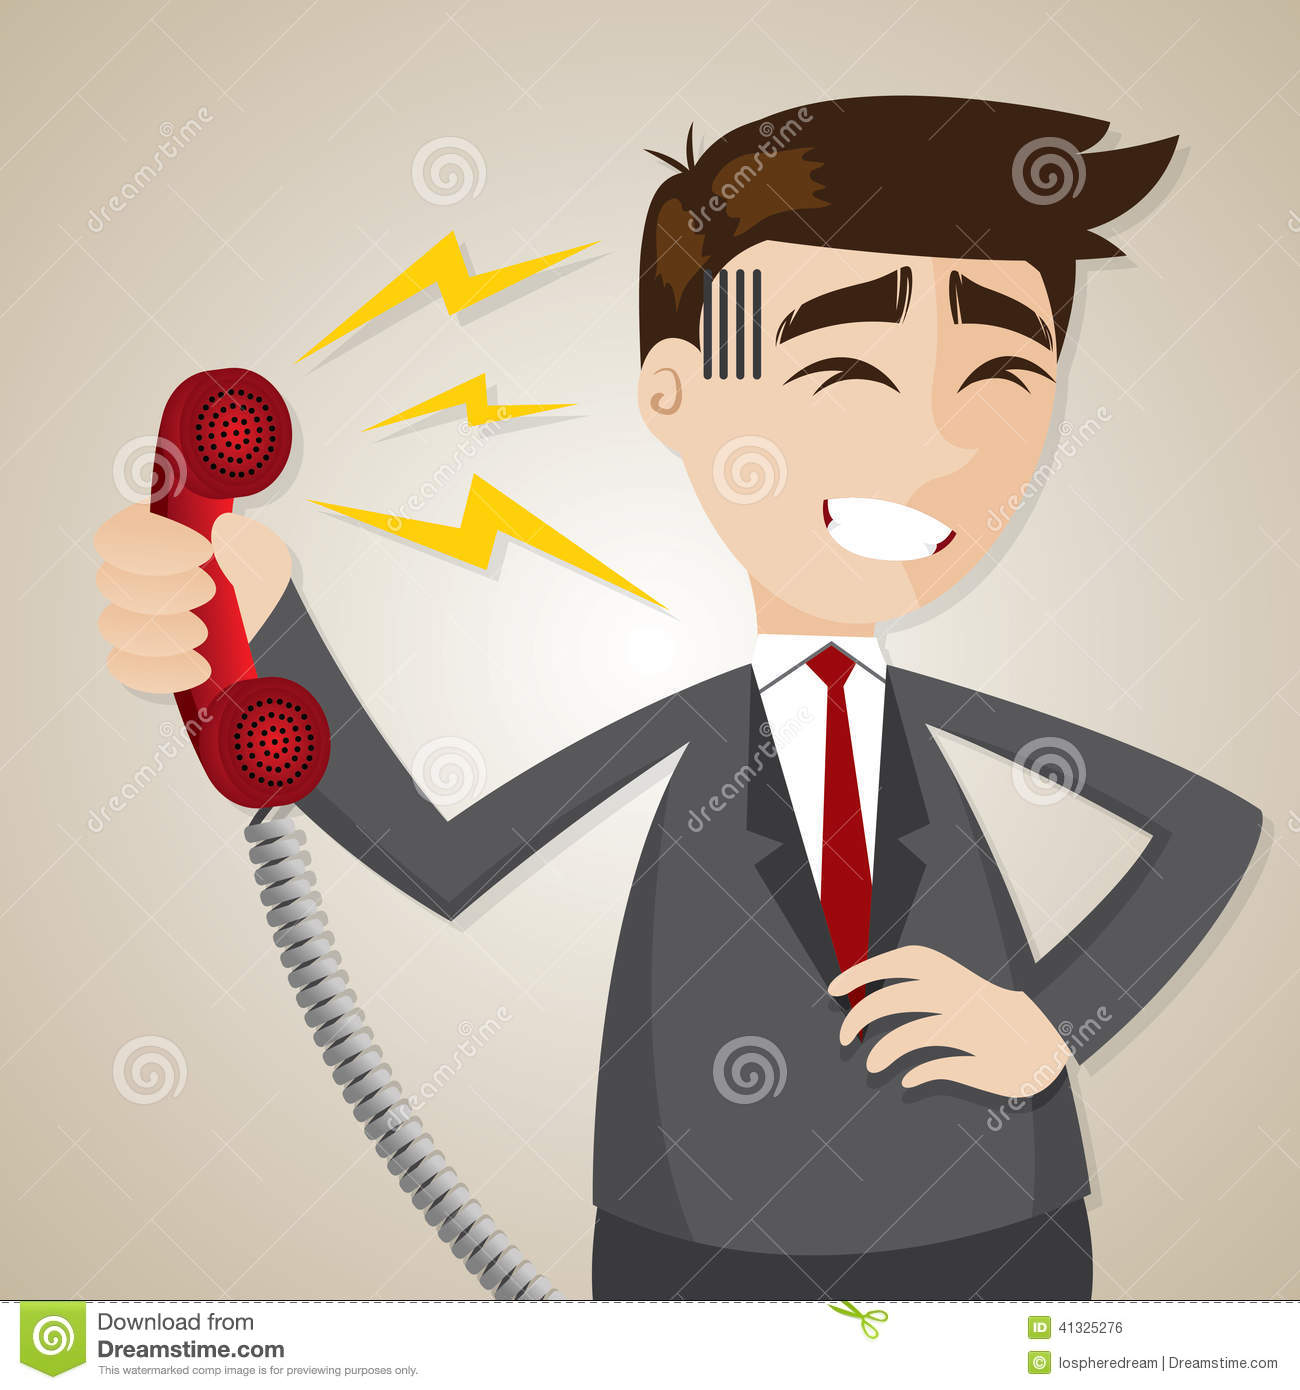 Cartoon Businessman With Loudness From Telephone Stock Vector.